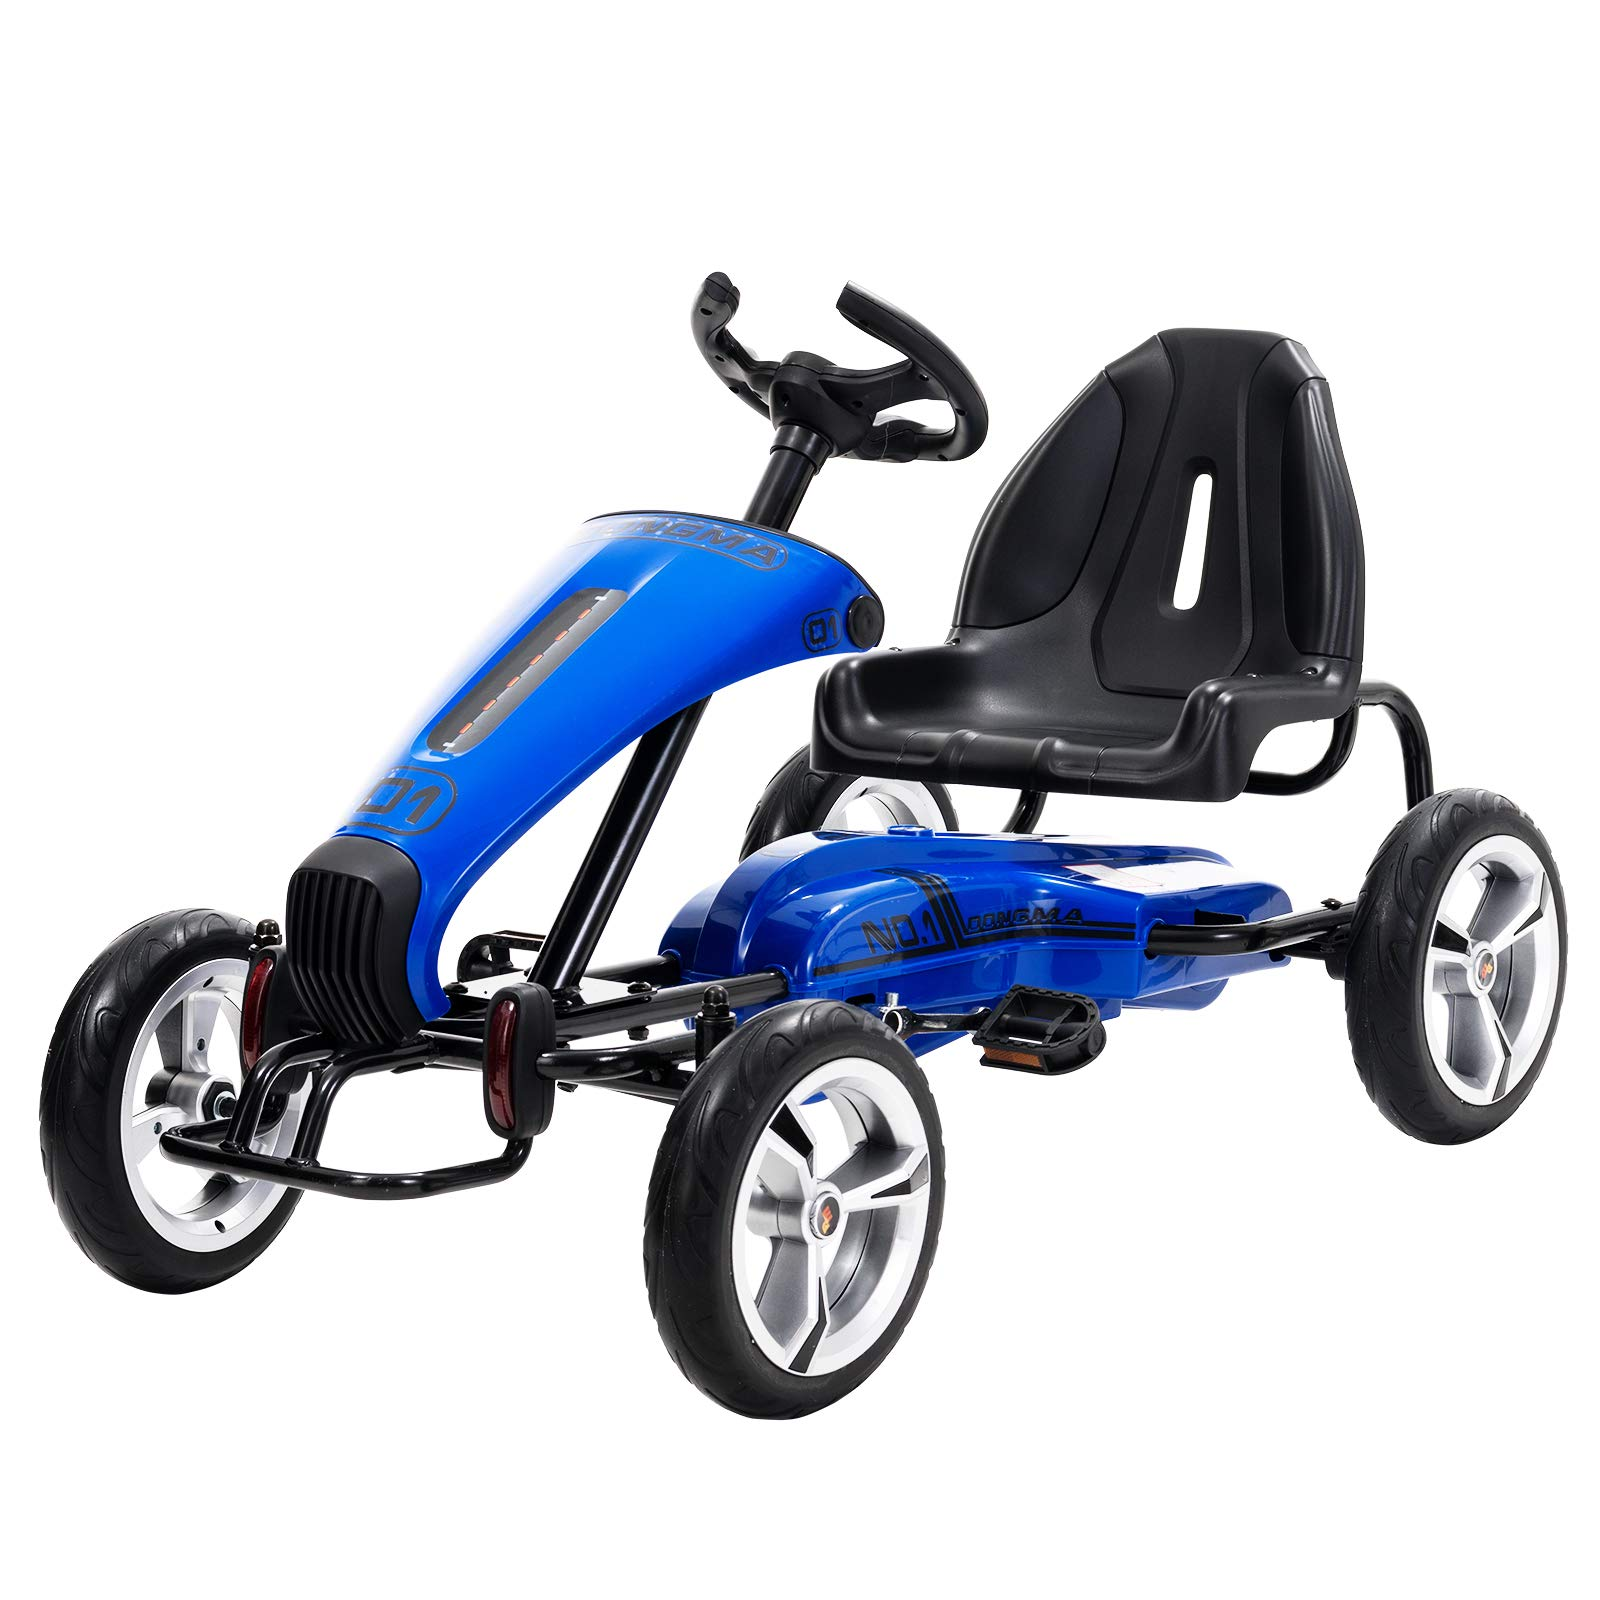 Uenjoy Pedal Go Kart Pedal Cars with Adjustable Seat, Sporty Steering Wheel, Blue